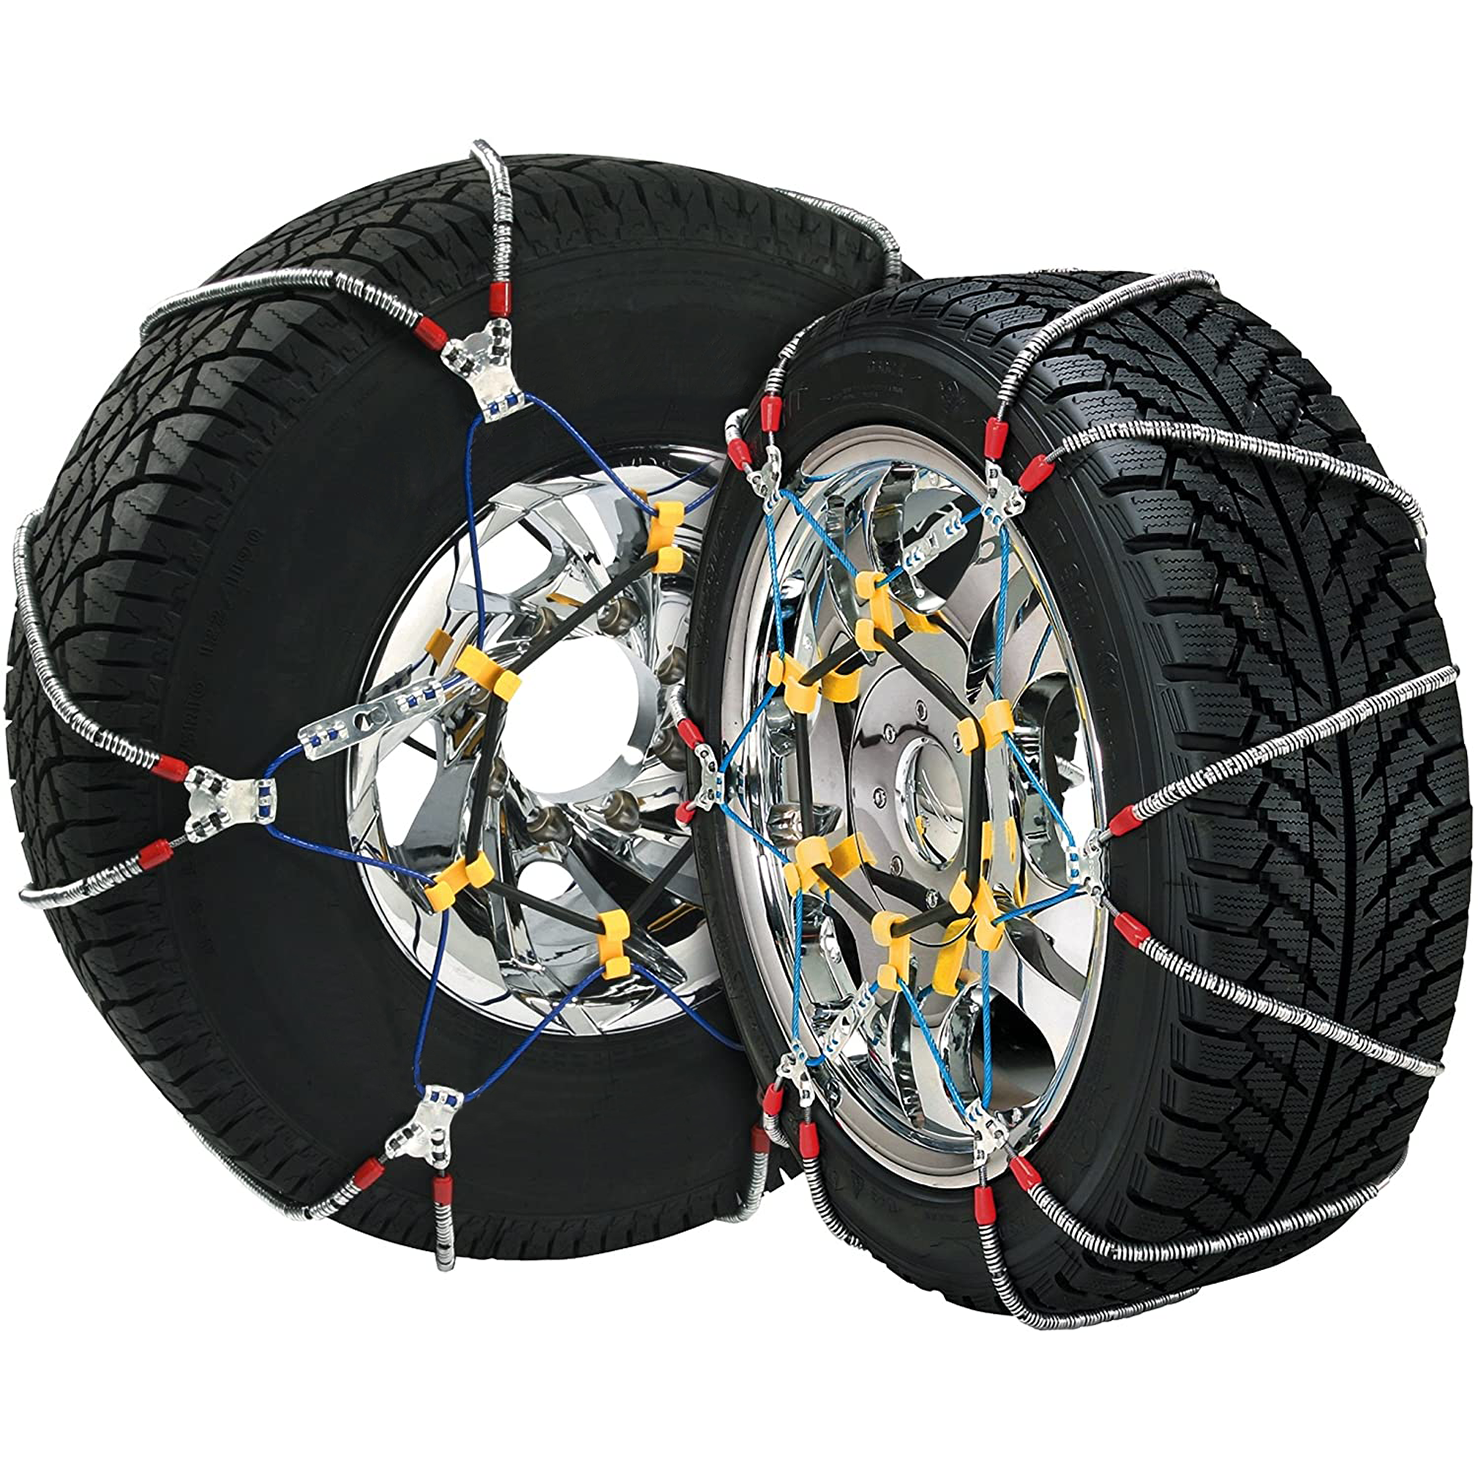 Security Chain Company SZ115 Super Z6 Cable Tire Chain for Passenger Cars, Pickups, and SUVs - Set o